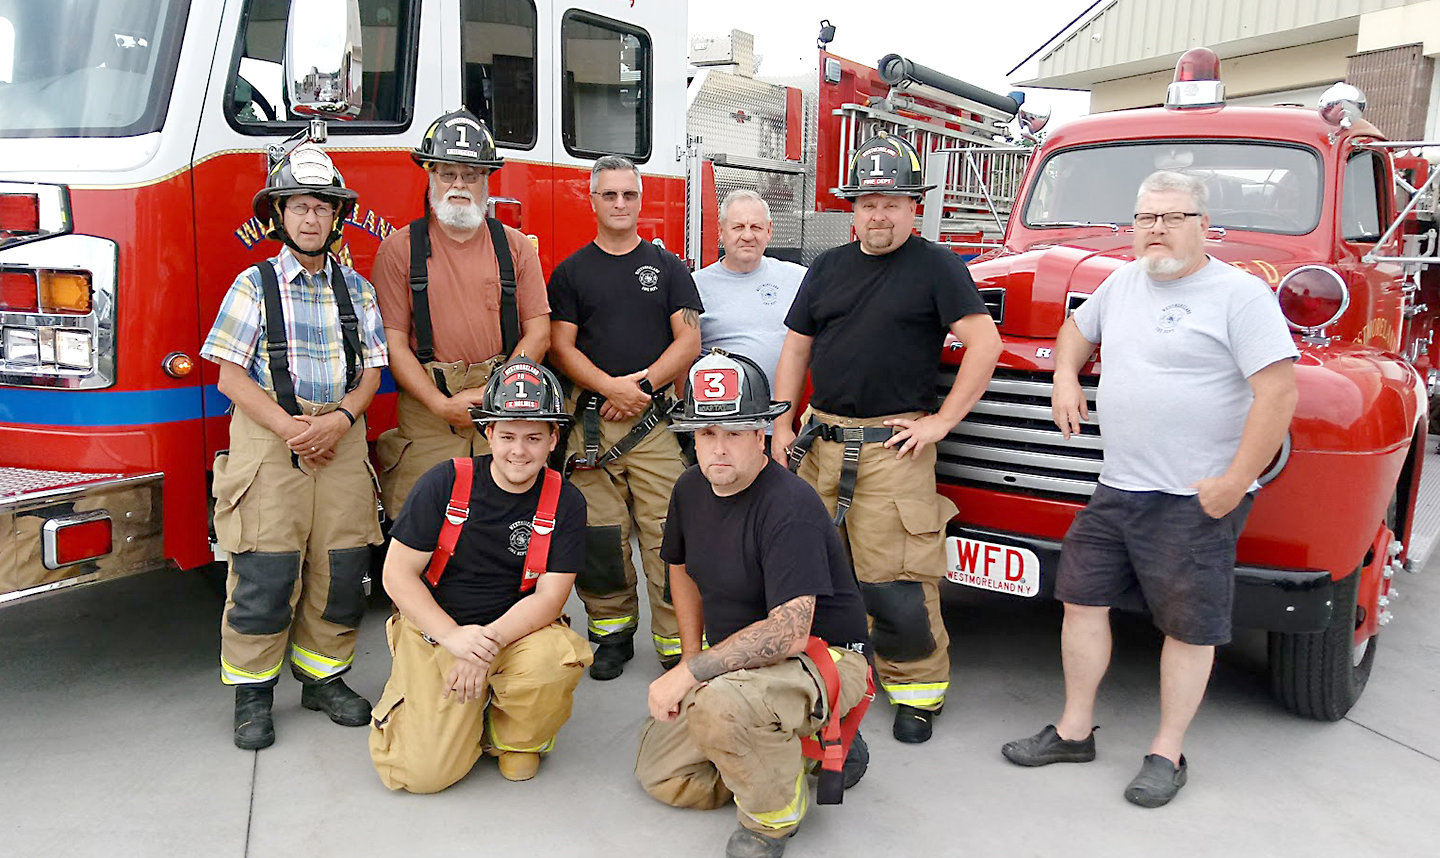 HAPPY ANNIVERSARY — Members of Westmoreland Volunteer Fire Department gather in front of some of their current and vintage rigs. The department is celebrating 75 years of serving the community with a big celebration planned for Saturday, July 20.